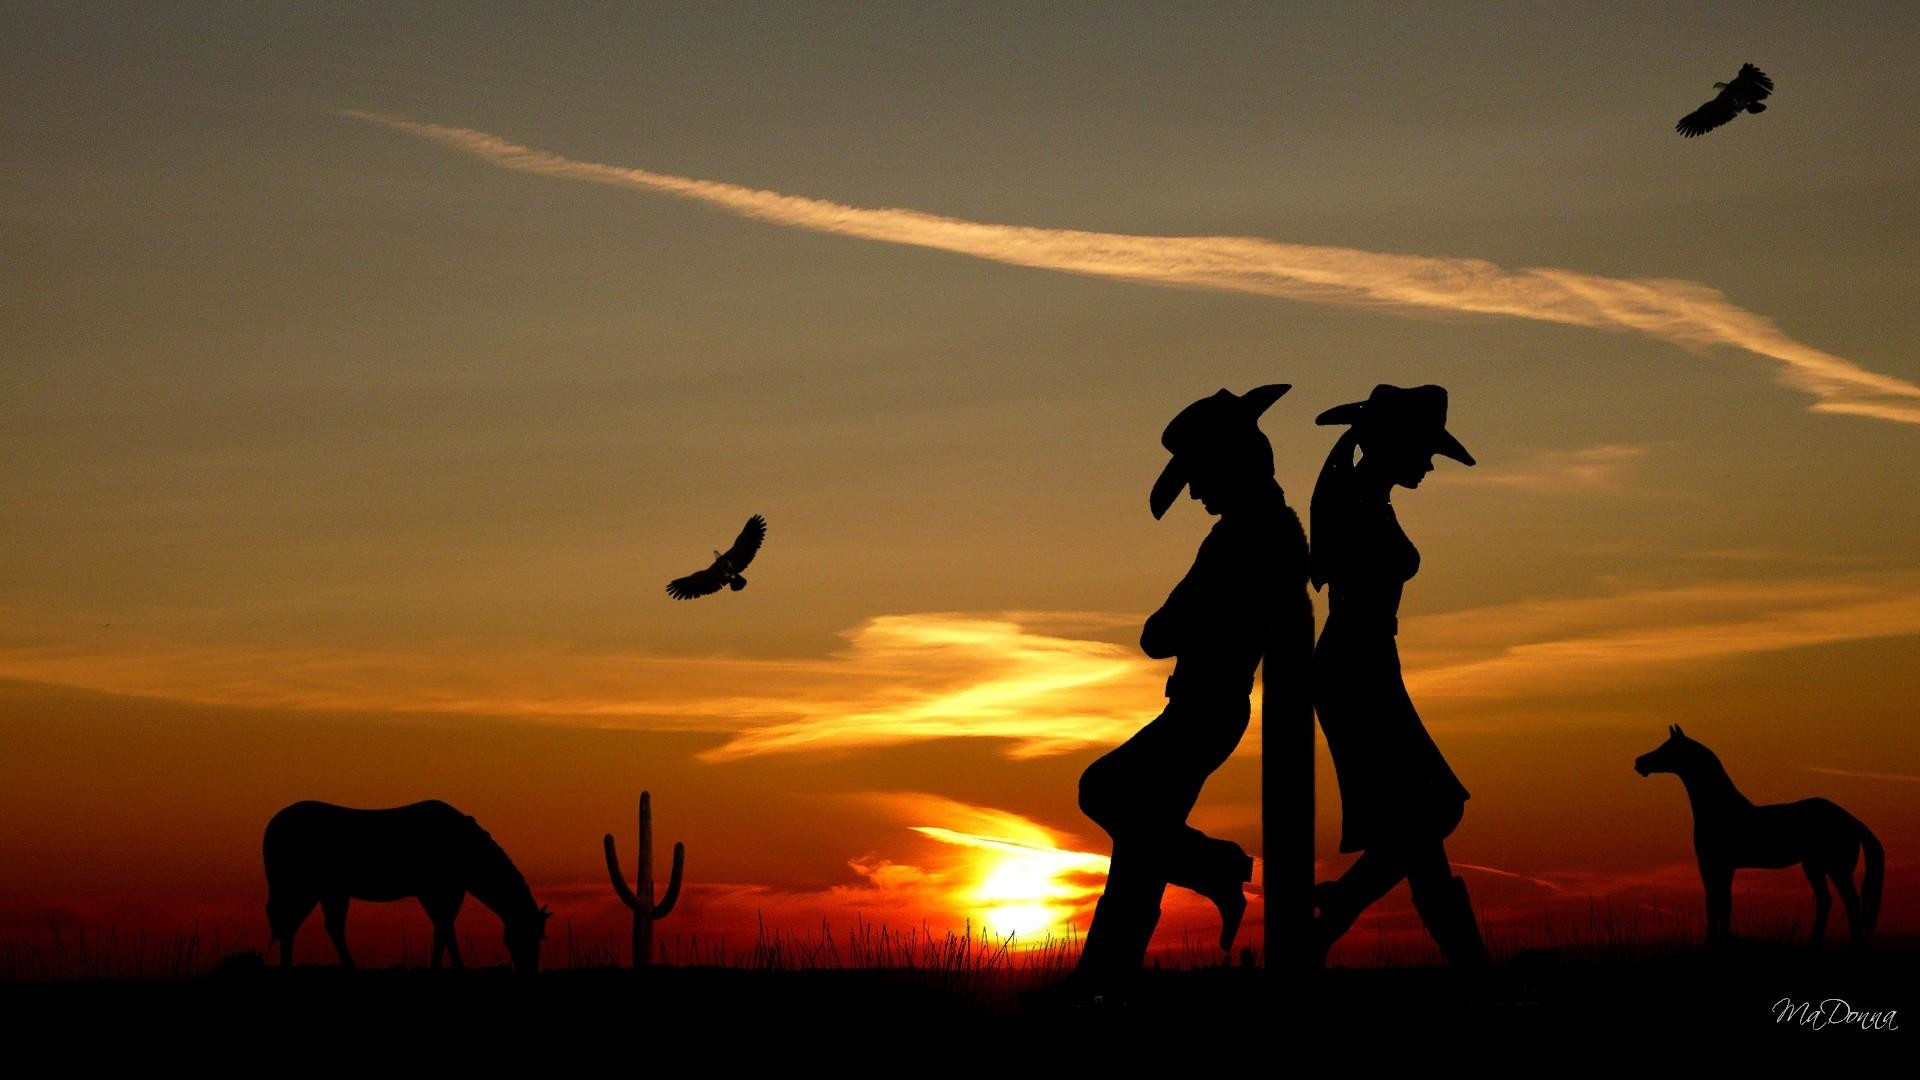 Country Girl Background by Kimberly Conibere on GoldWallpapers